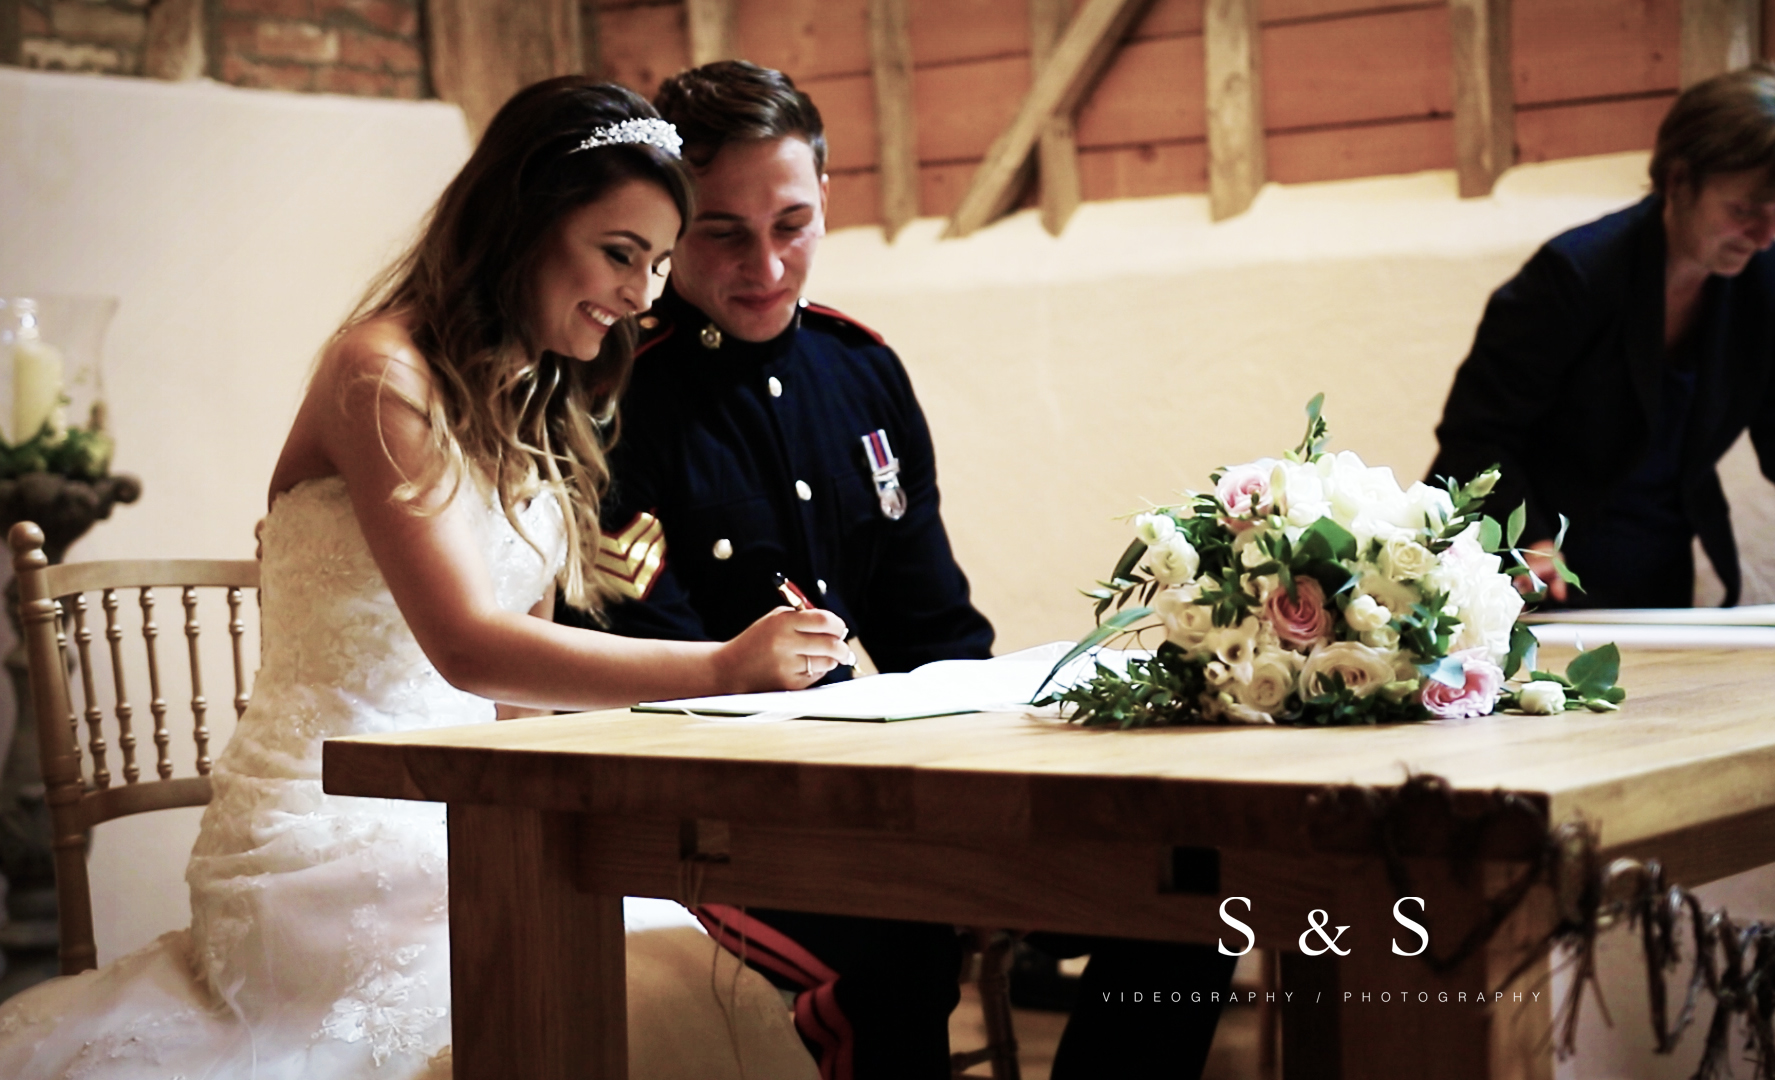 S&S Cambridge Wedding Video